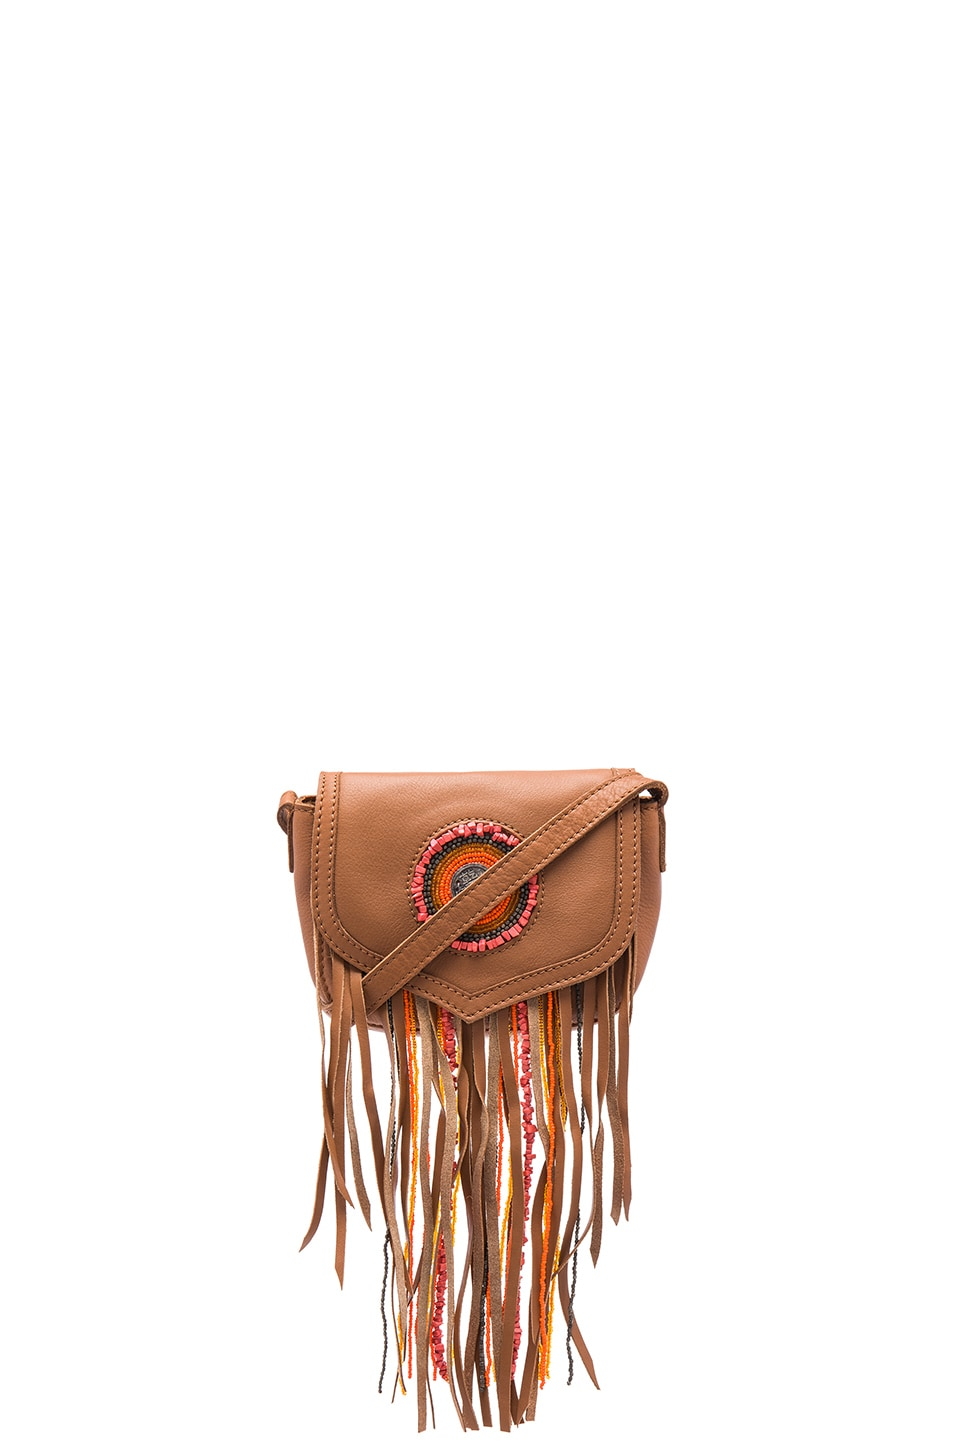 Sam Edelman Ariana Crossbody in Saddle